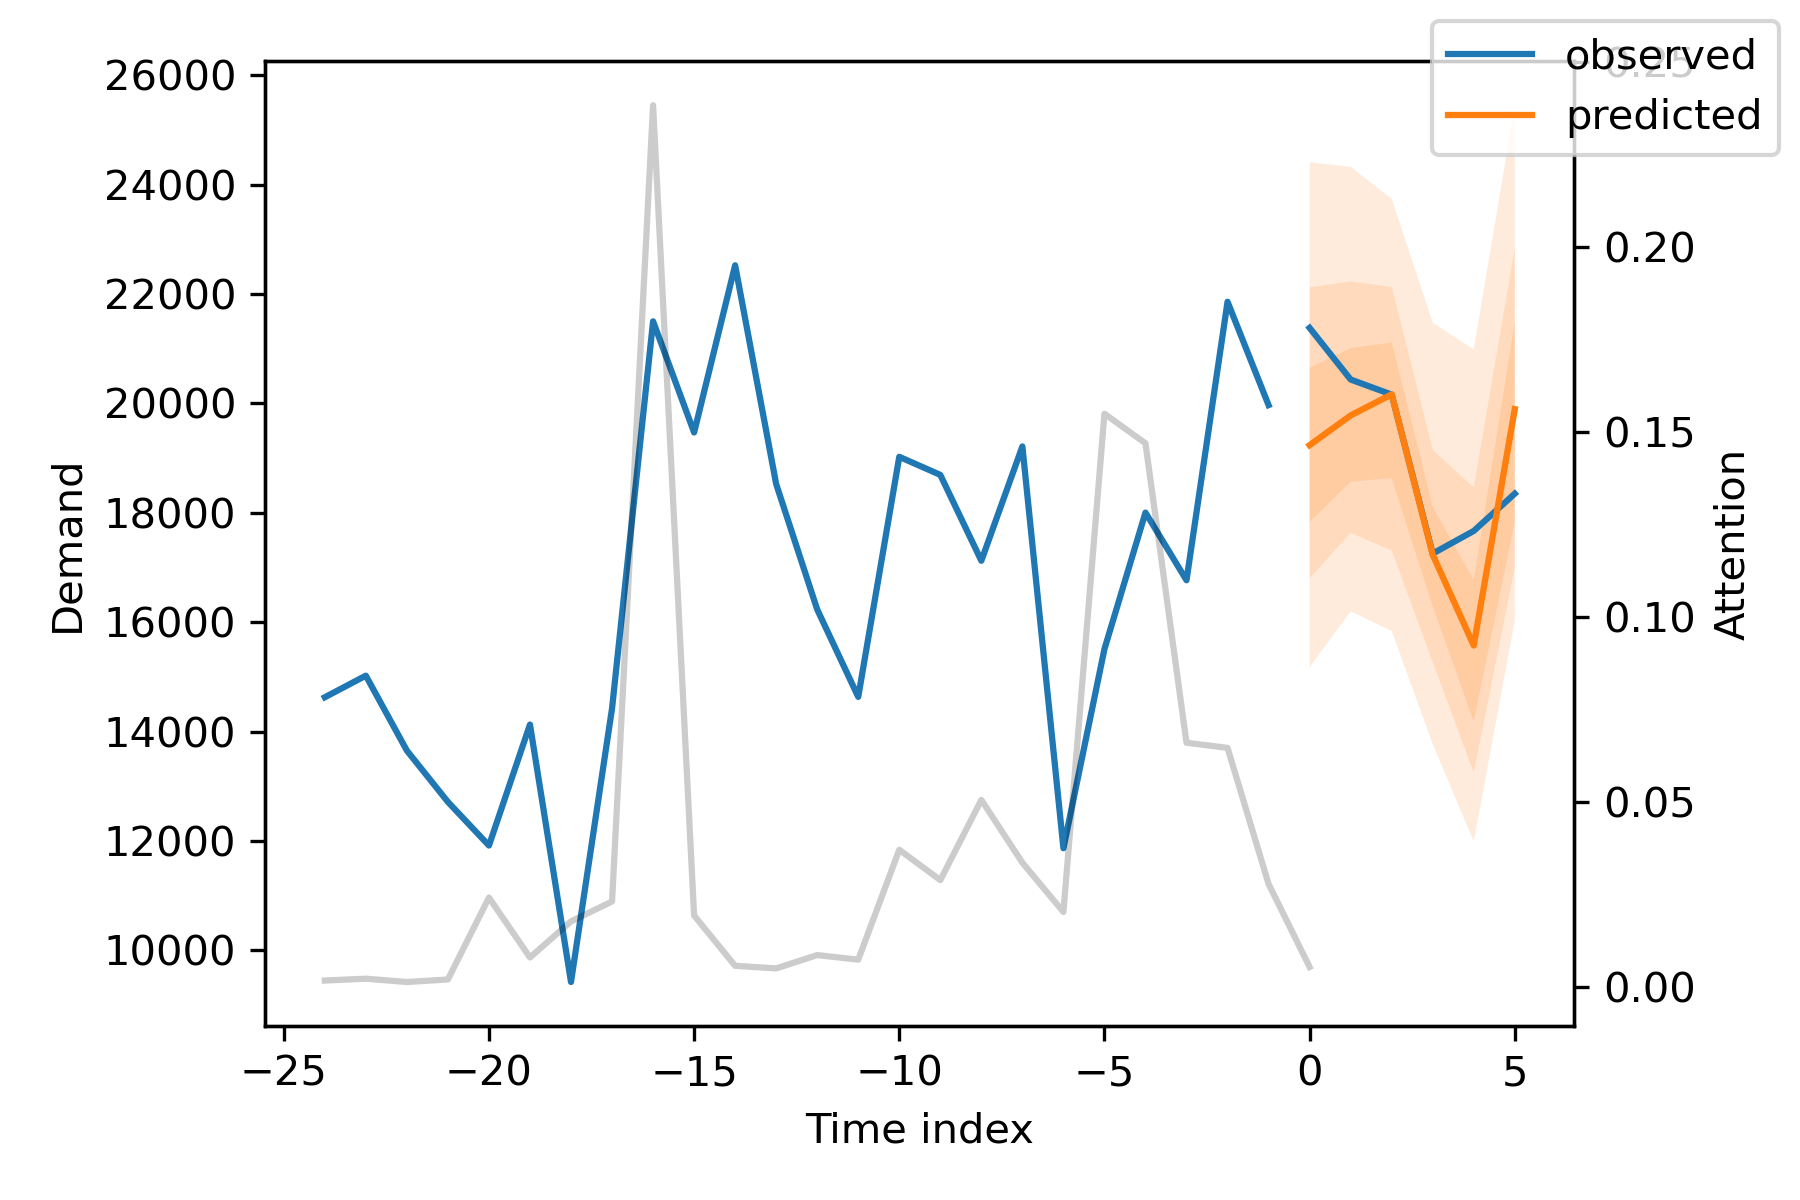 Introducing PyTorch Forecasting